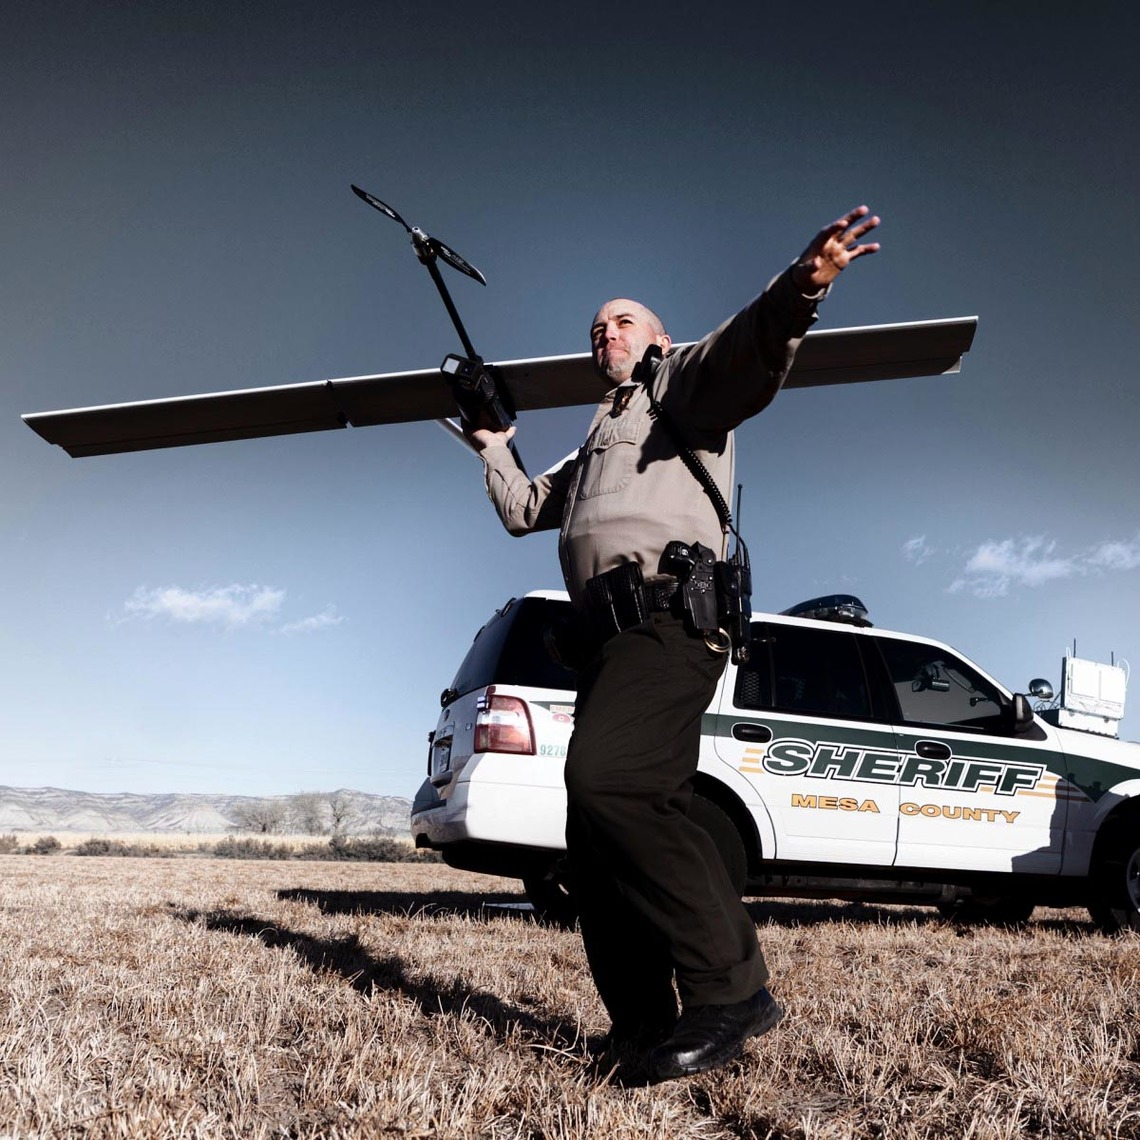 Deputy Derek Johnson of Colorado's Mesa County Sheriff's Office, one of the only departments in the country with permission to fly drones.